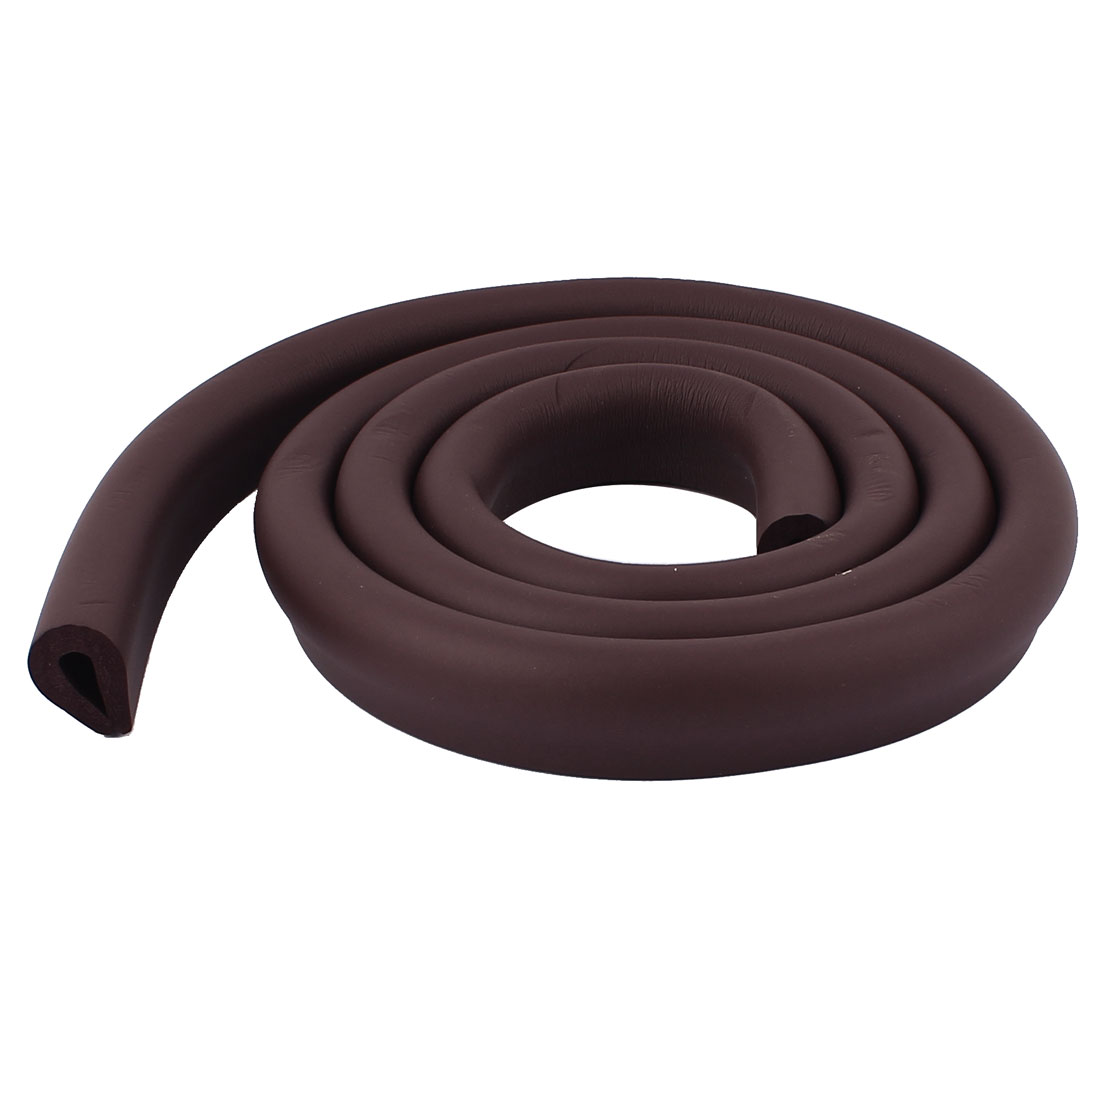 Safety Furniture Corner Edge Soft Protection Cushion Guard 1.9M Coffee Color